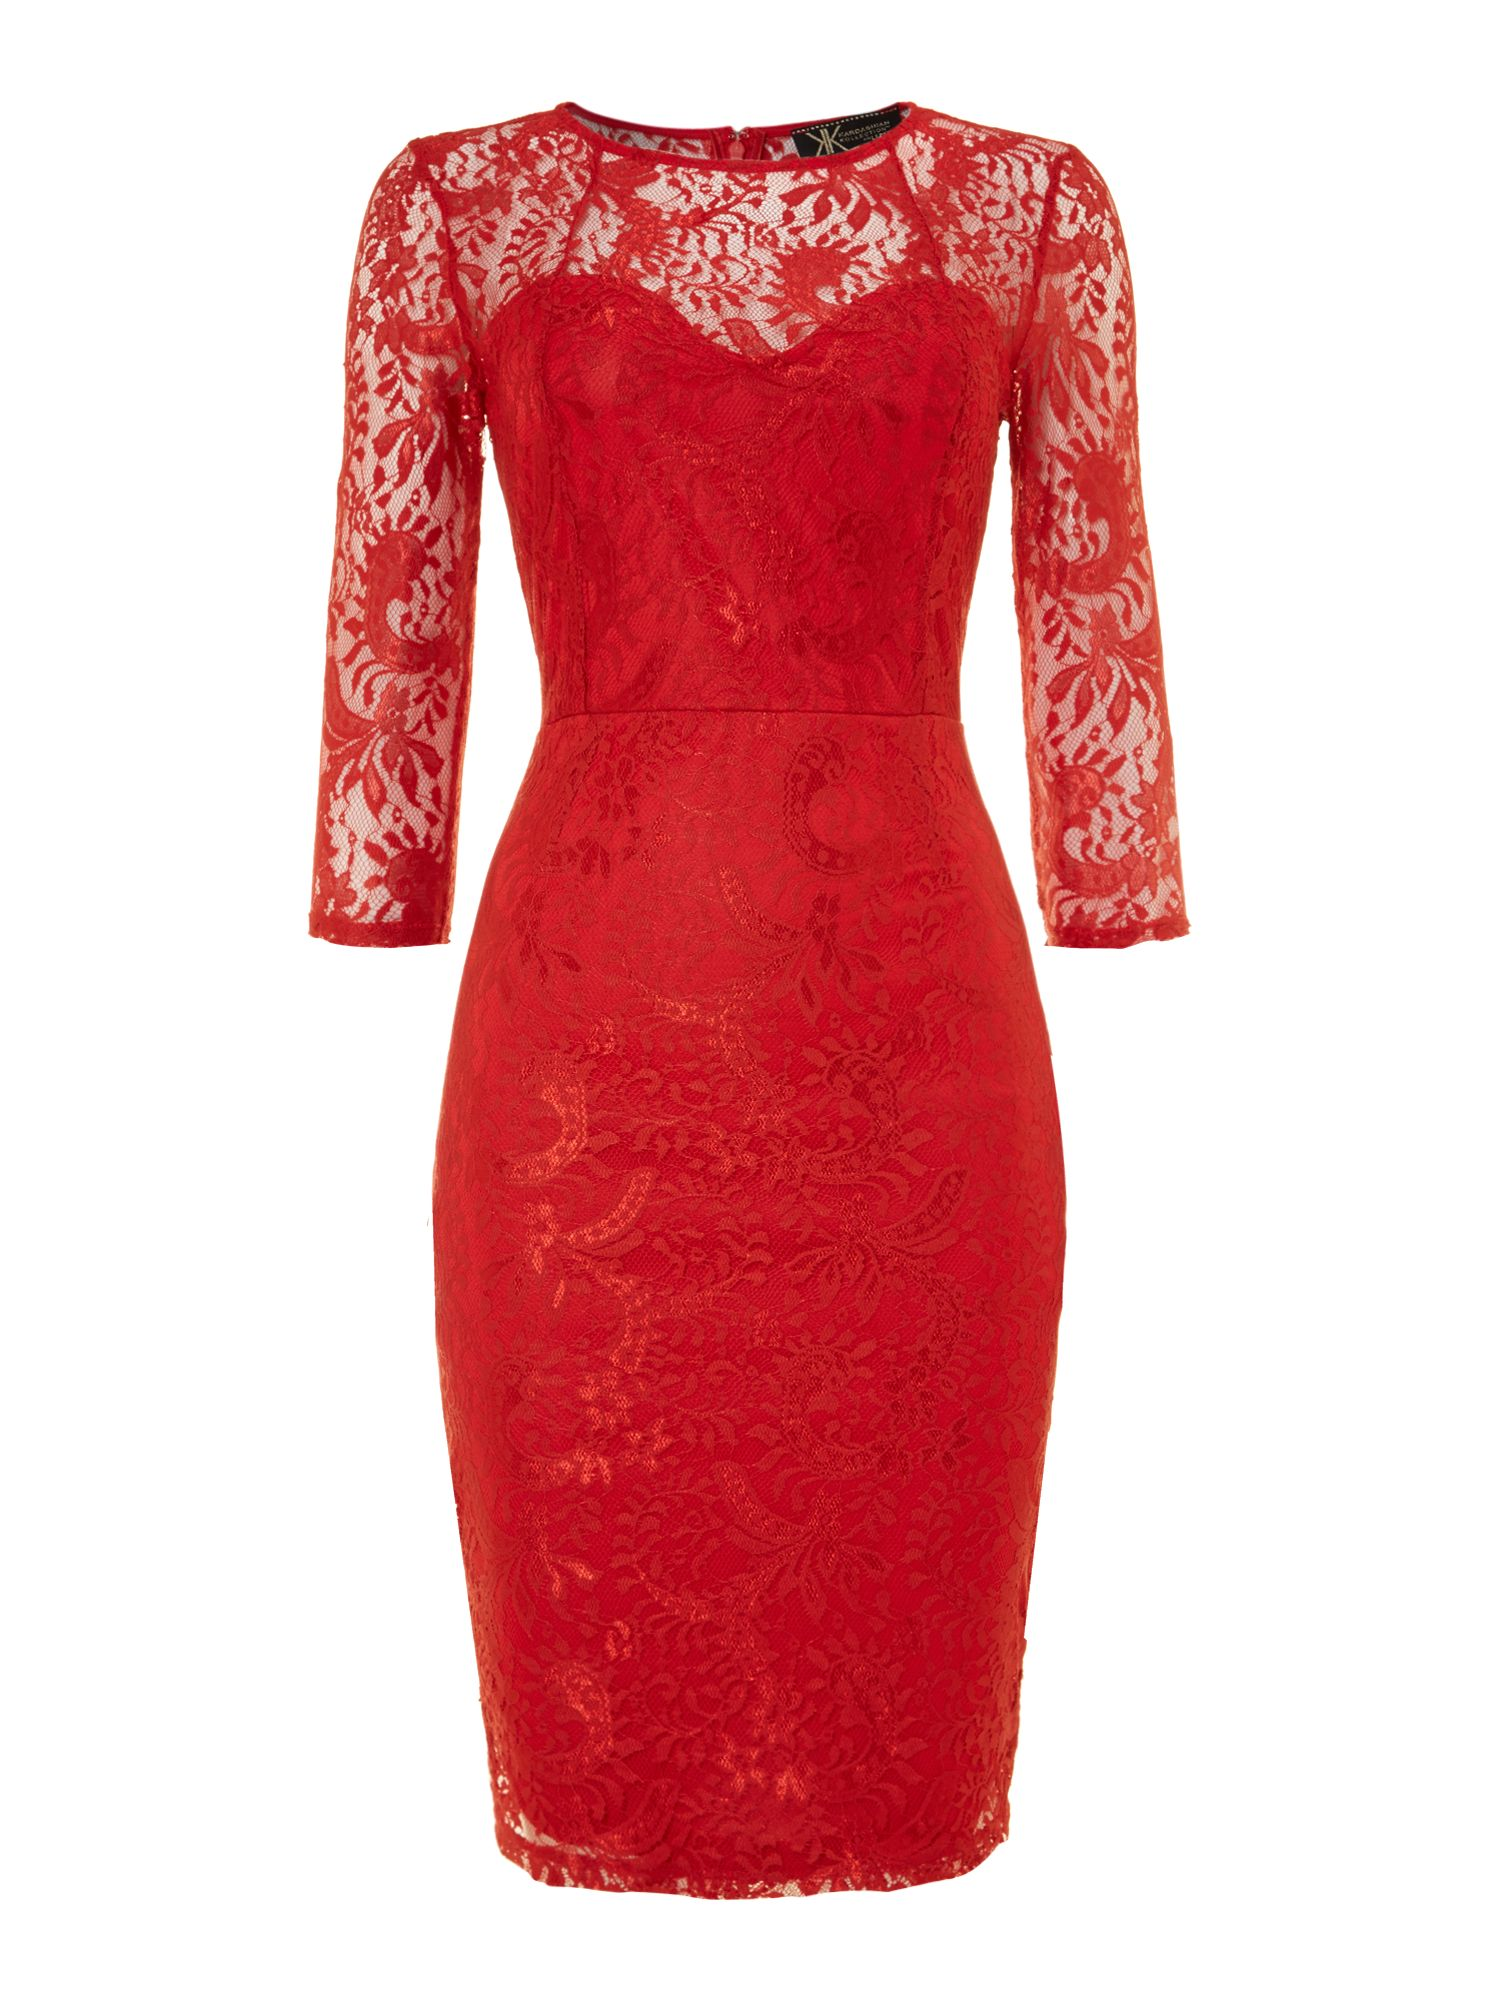 Kardashian all over lace midi dress